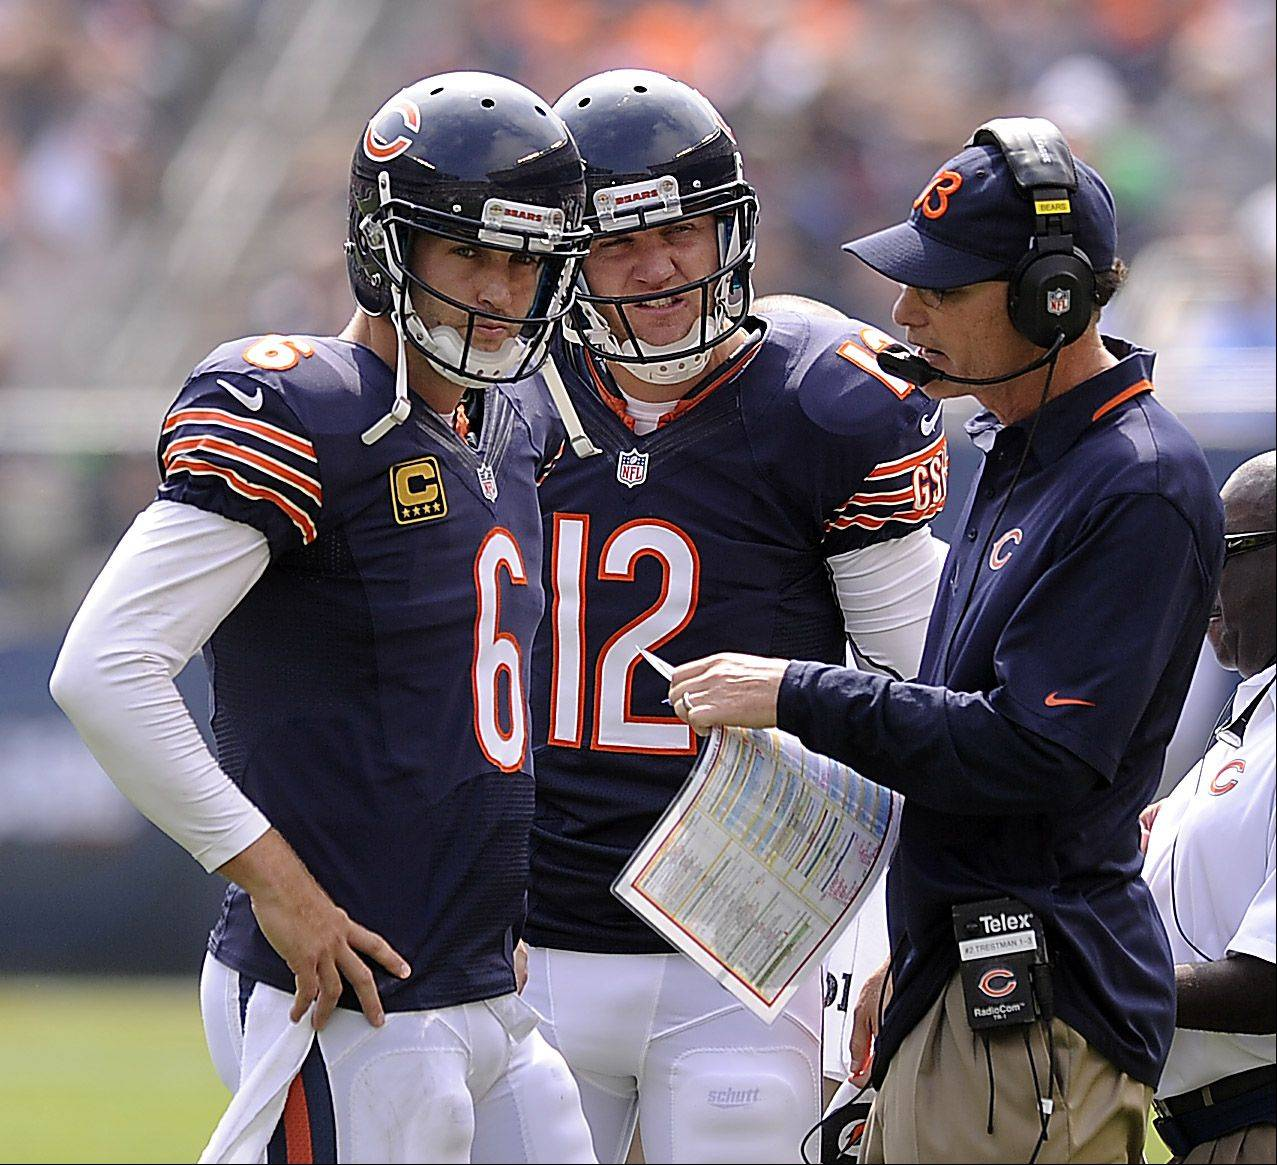 Marc Trestman talks things over with Jay Cutler and Josh McCown in the season opener at Soldier Field. Cutler and the Bears play Green Bay at Soldier Field on Sunday with the division title at stake.